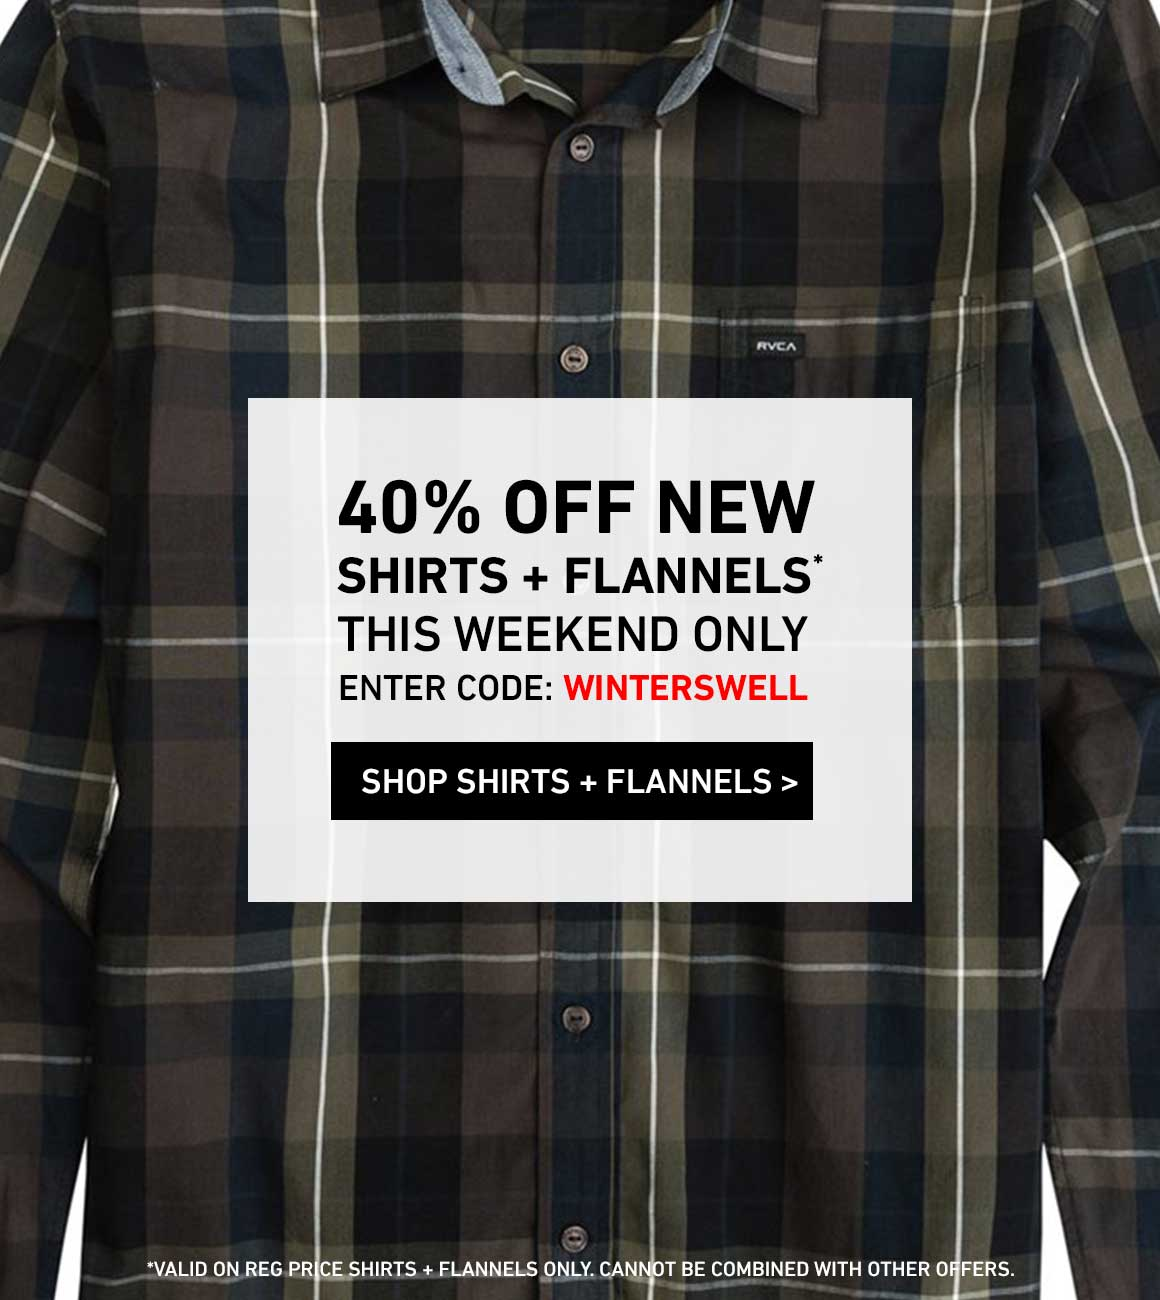 THIS WEEKEND ONLY: 40% Off New Shirts + Flannels! Enter Code: WINTERSWELL